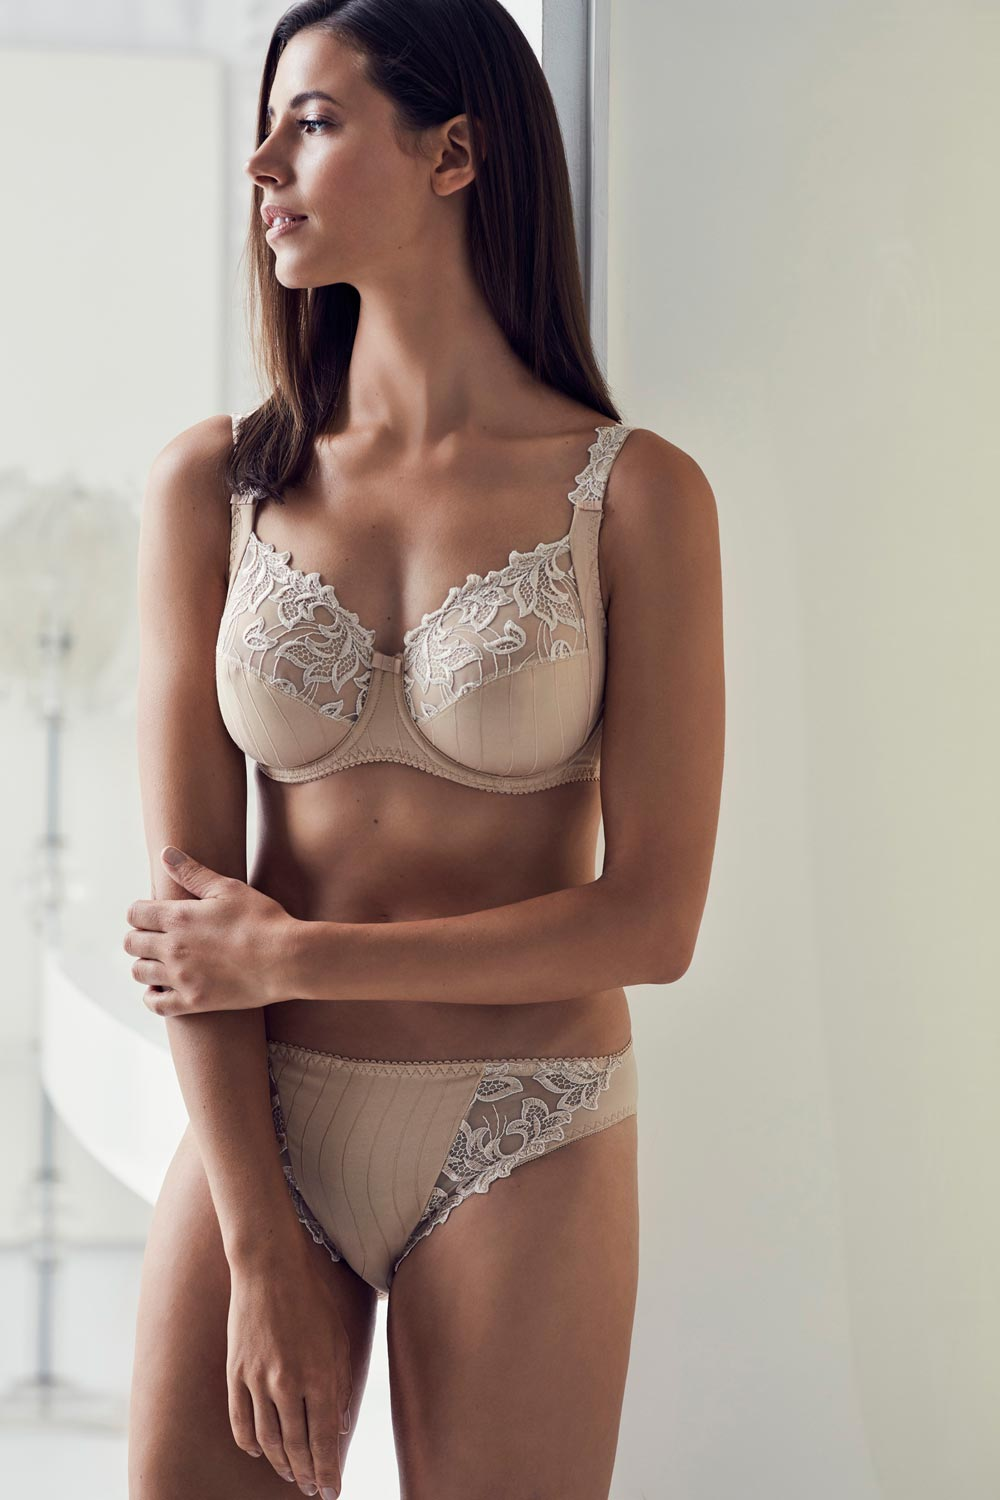 Dickory Dock - Imported Lingerie - Lace